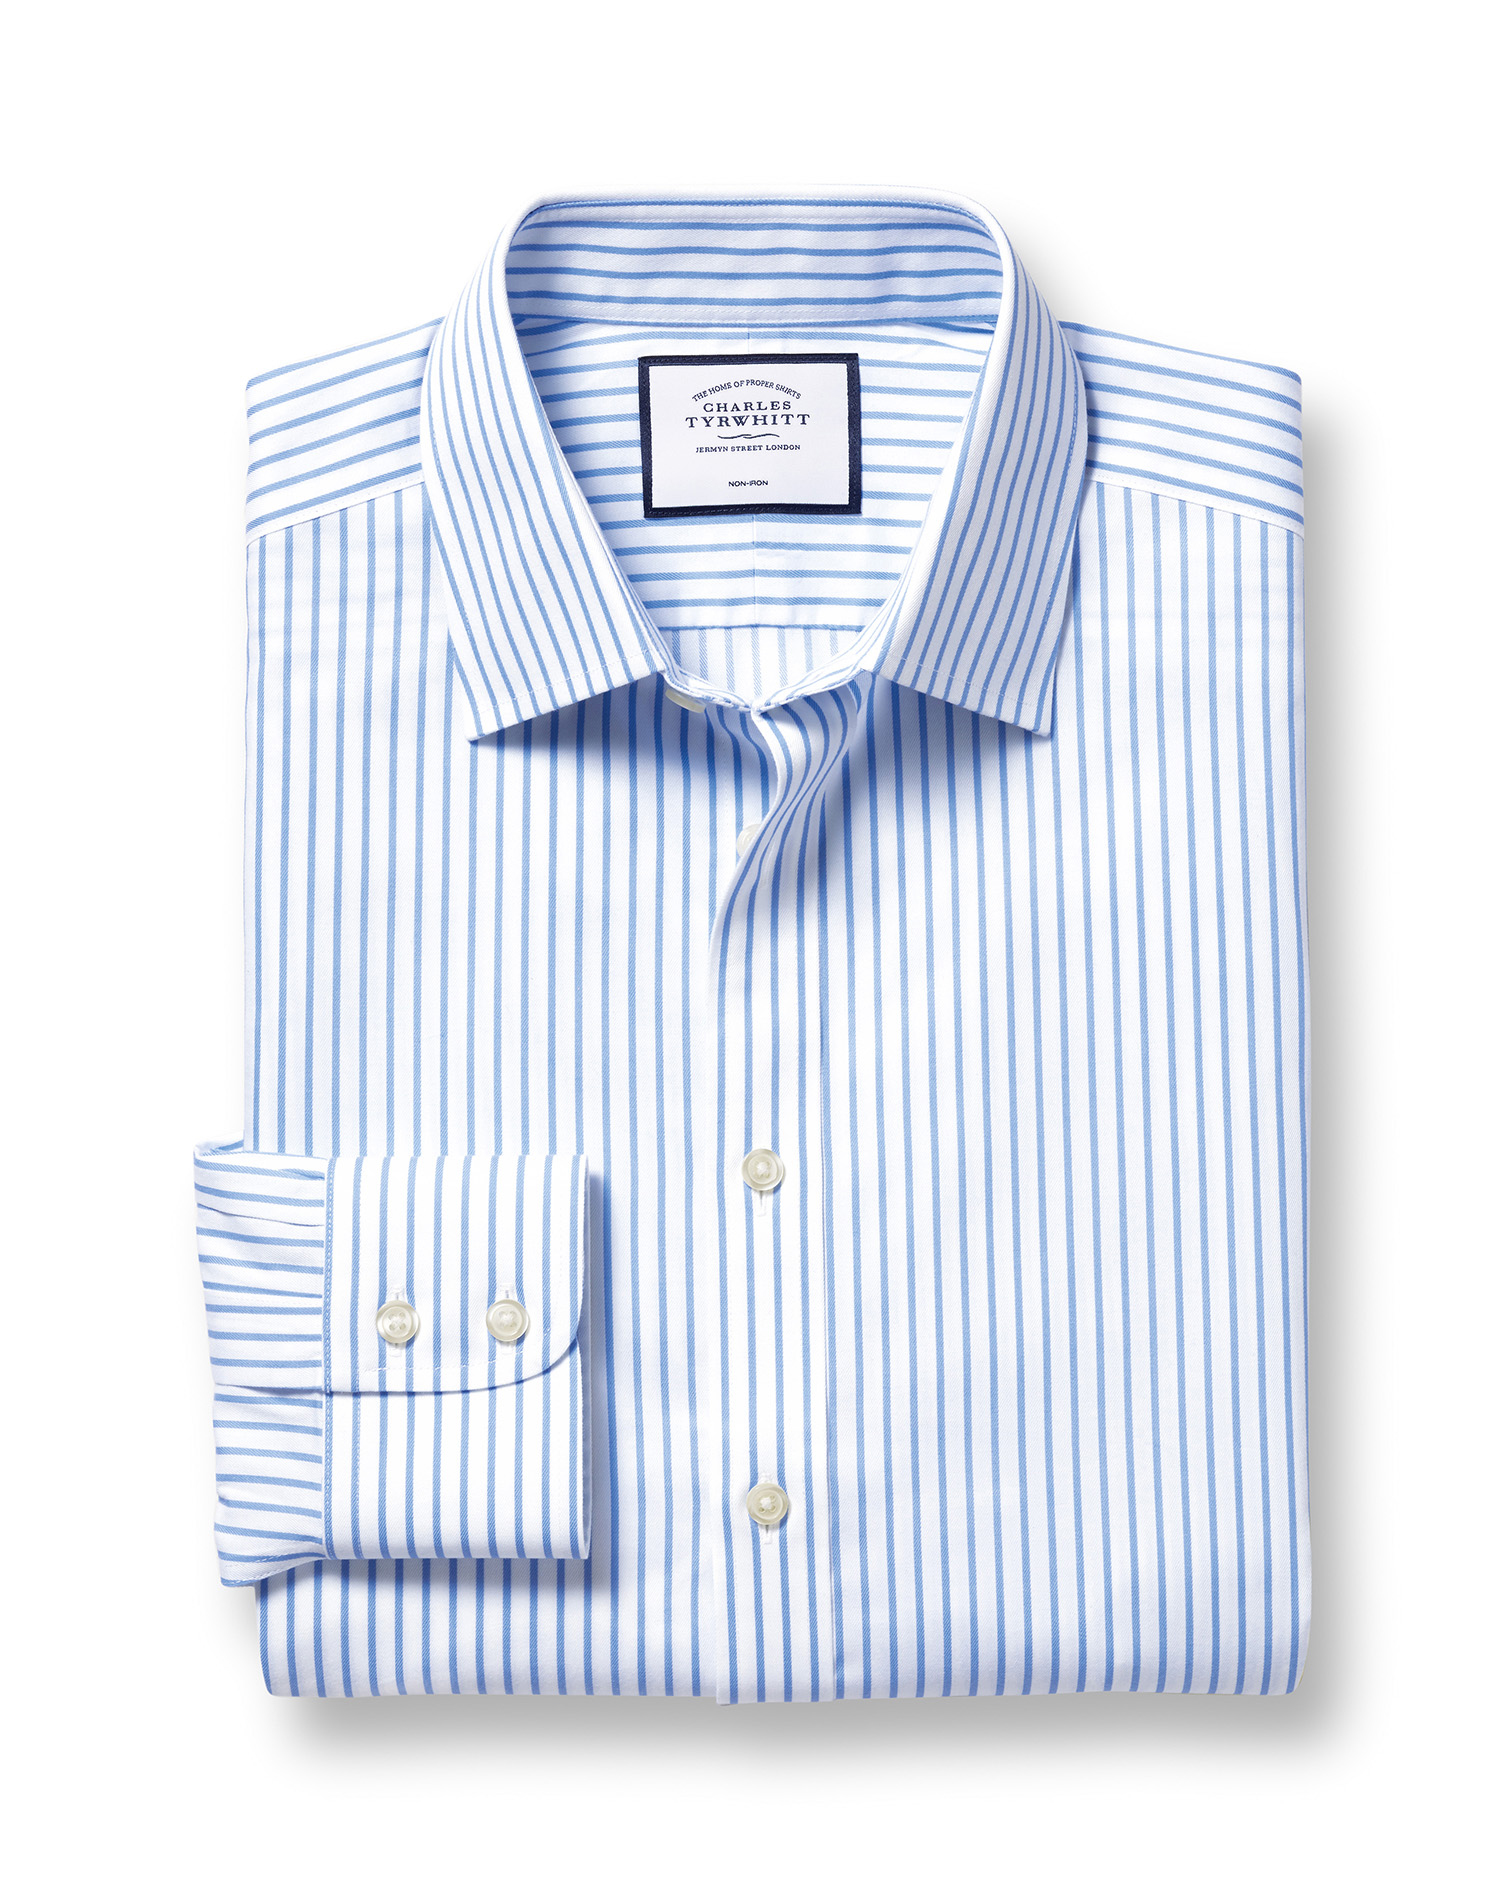 Slim Fit Non-Iron Twill White and Sky Blue Stripe Cotton Formal Shirt Single Cuff Size 15/35 by Char